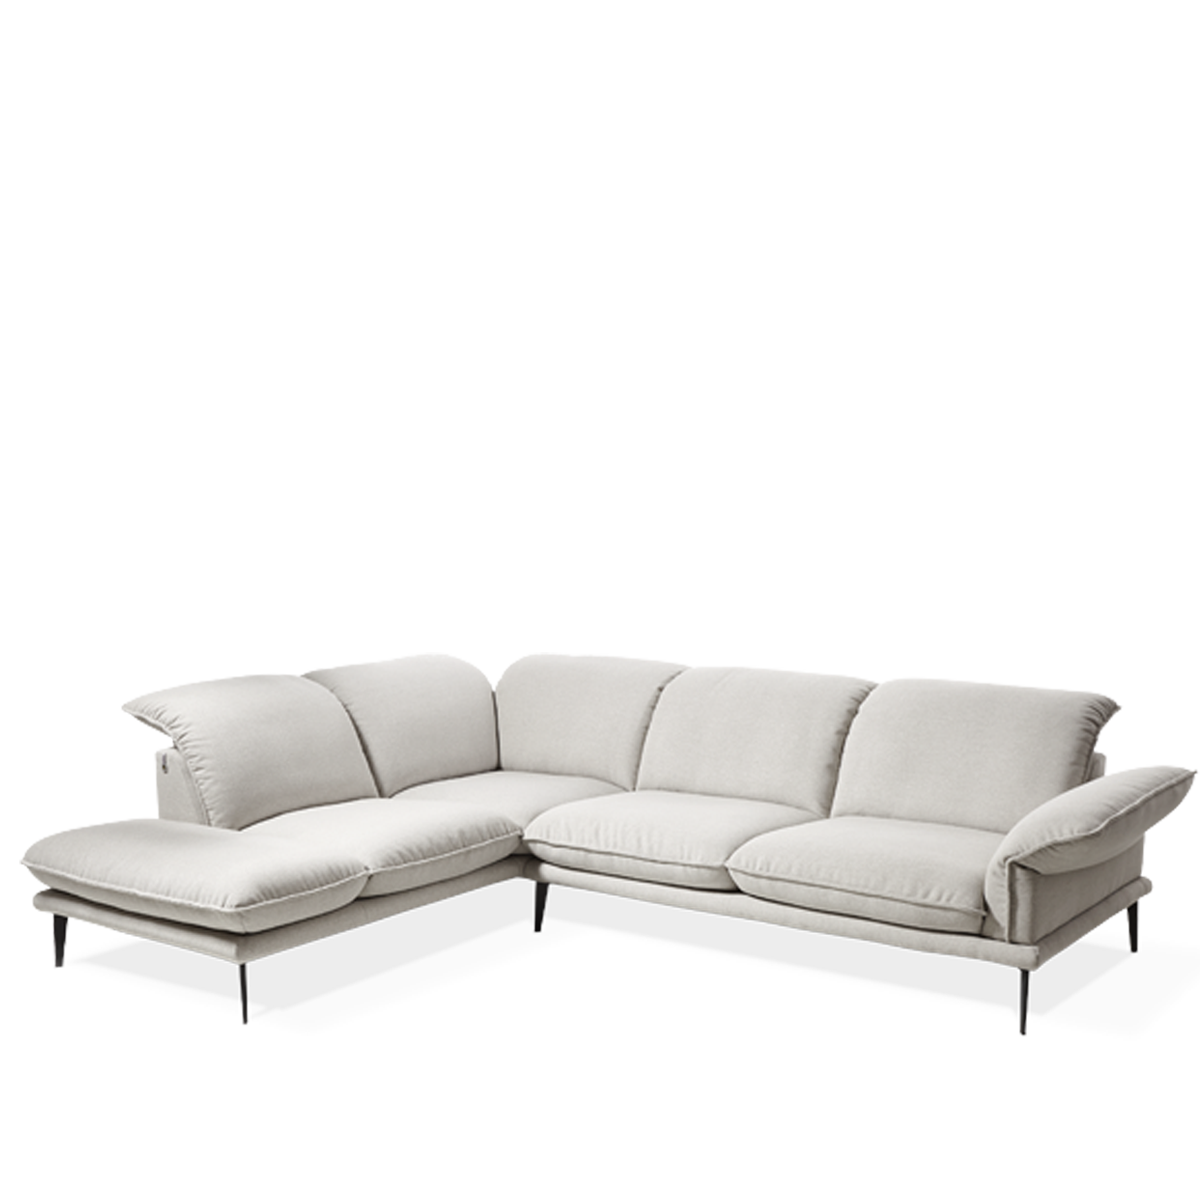 willi schillig ecksofa sherry 24600 ecksofa bestehend aus. Black Bedroom Furniture Sets. Home Design Ideas